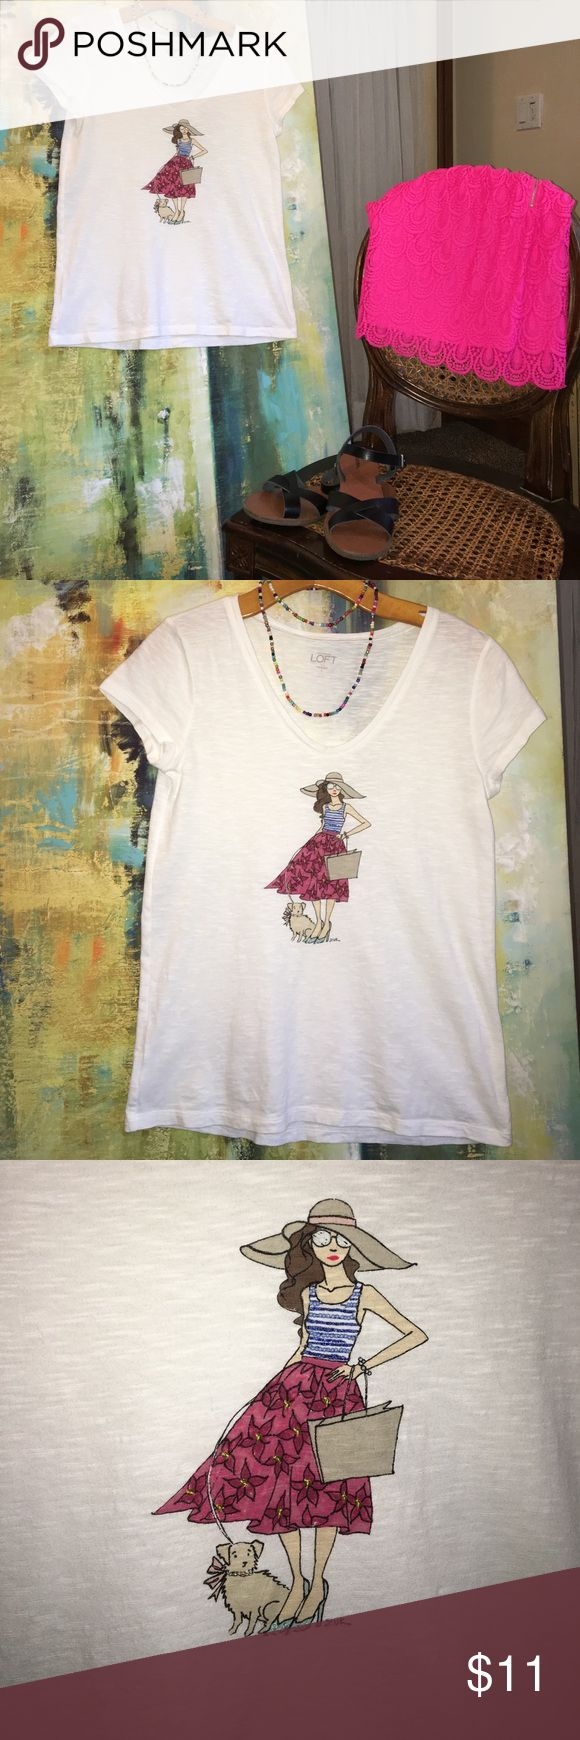 Anne Taylor Loft Girl & Dog T shirt Great for summer light weight, 100% cotton & looks super cute with a skirt or shorts! Tops Tees - Short Sleeve